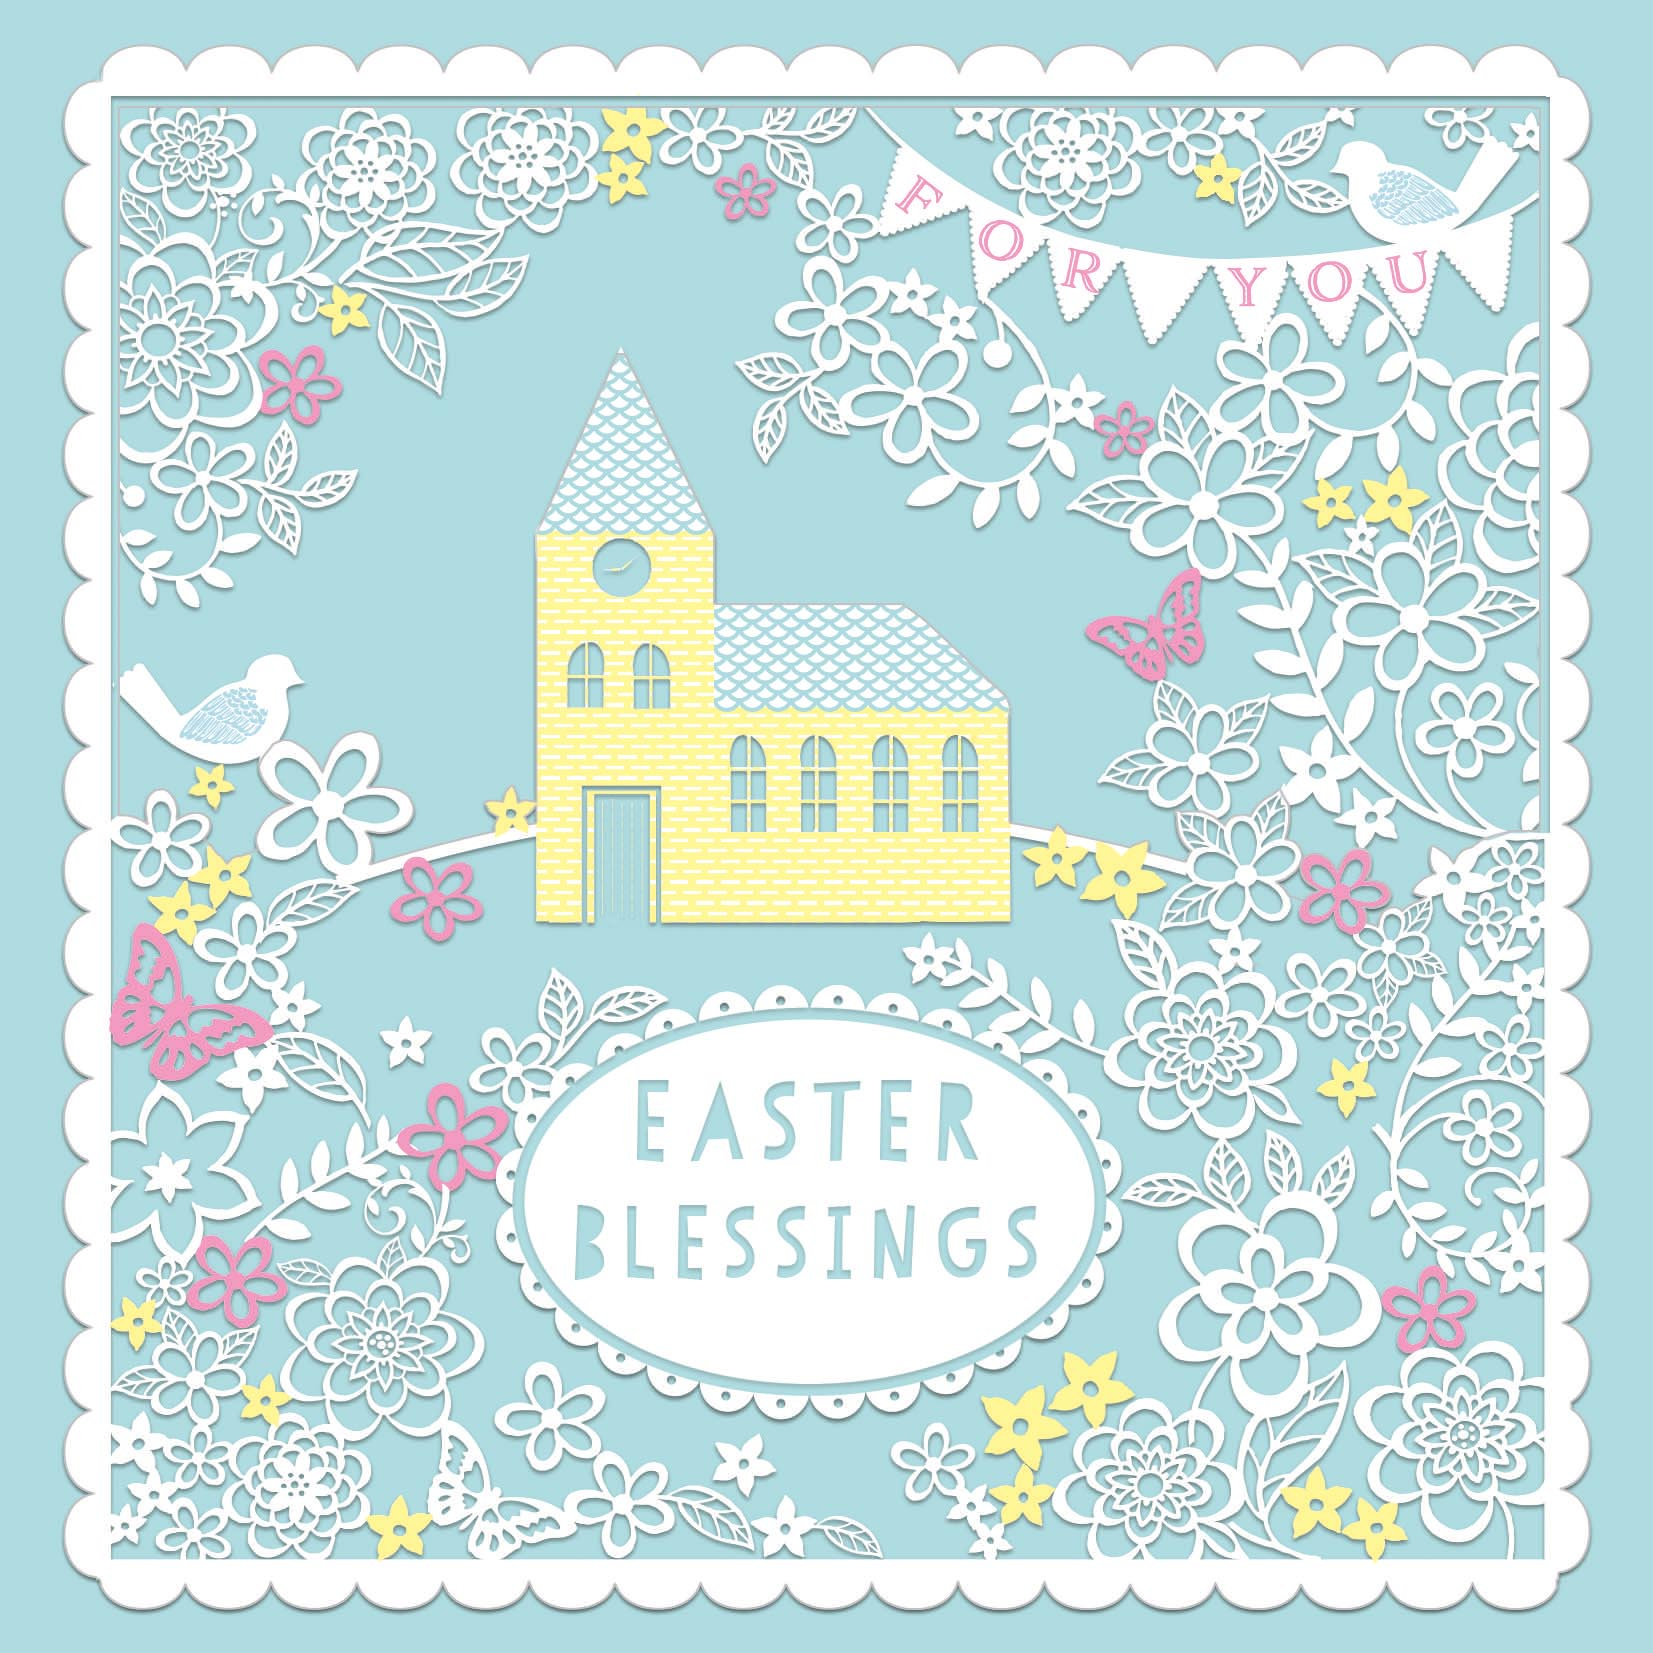 Pack of 4 british heart foundation charity easter greeting cards pack of 4 british heart foundation charity easter greeting cards m4hsunfo